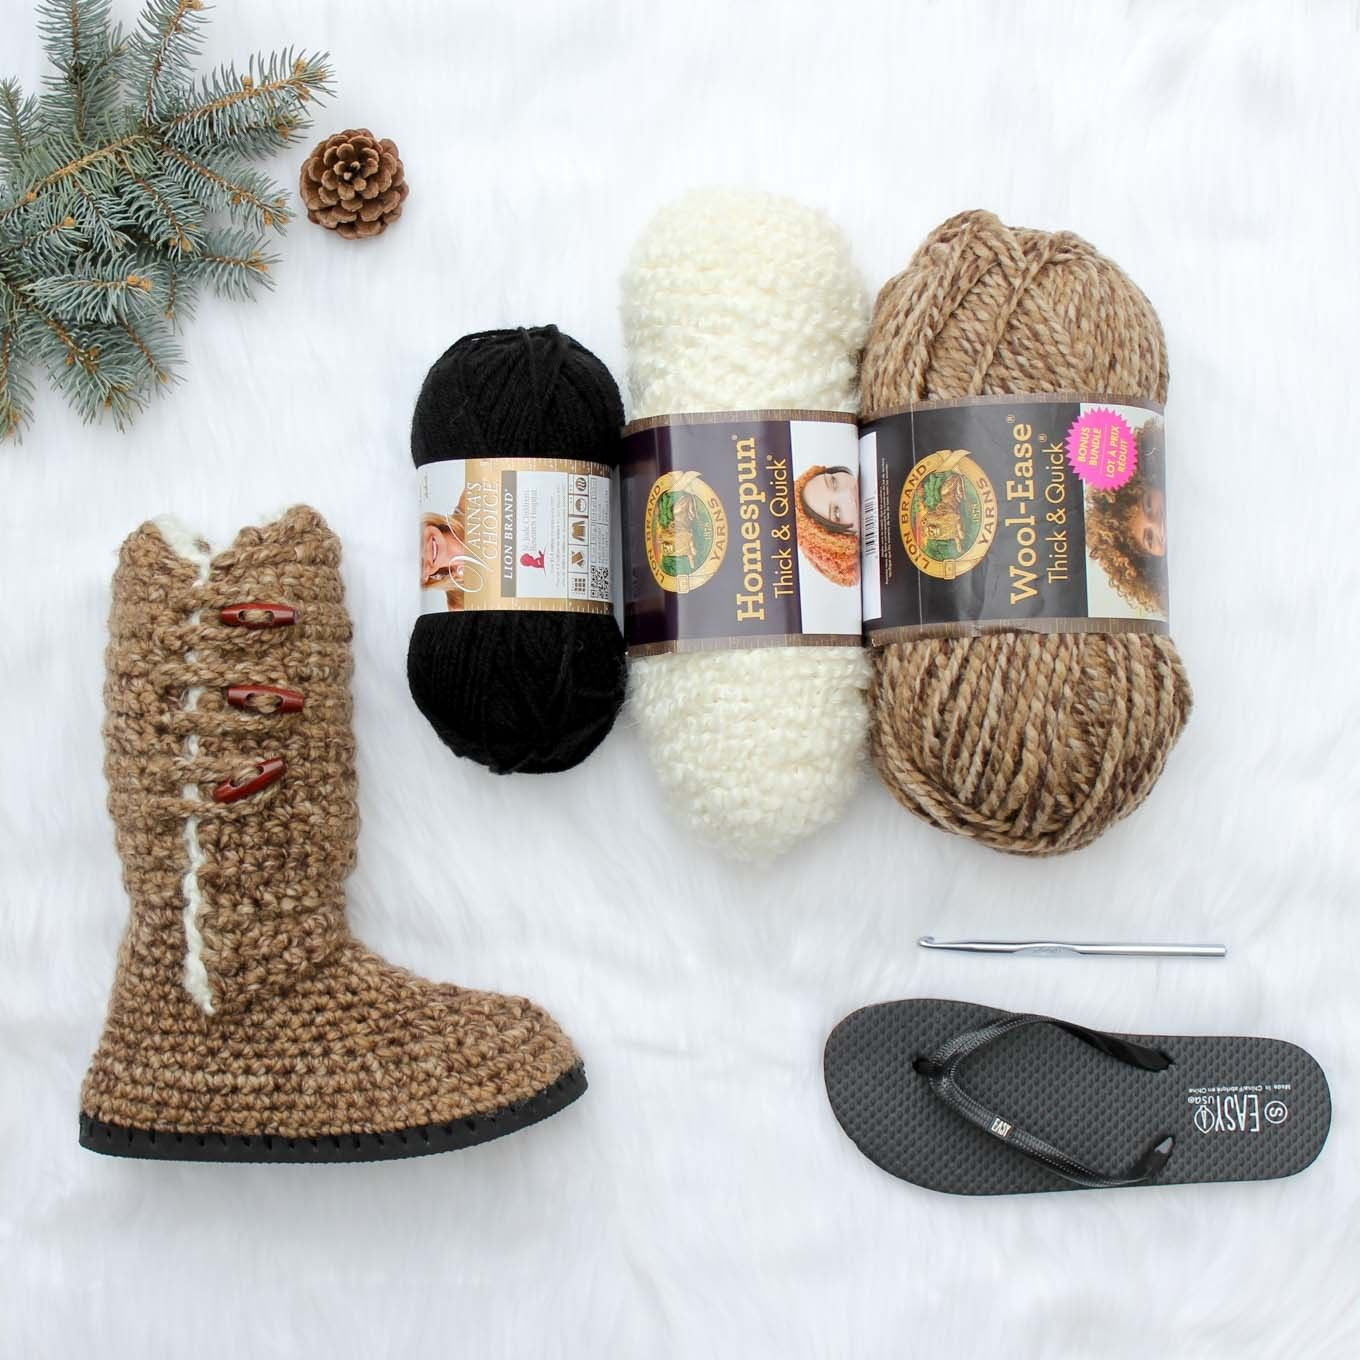 Crochet Kit - Breckenridge Boots - Lion Brand Yarn | Dog Winter ...